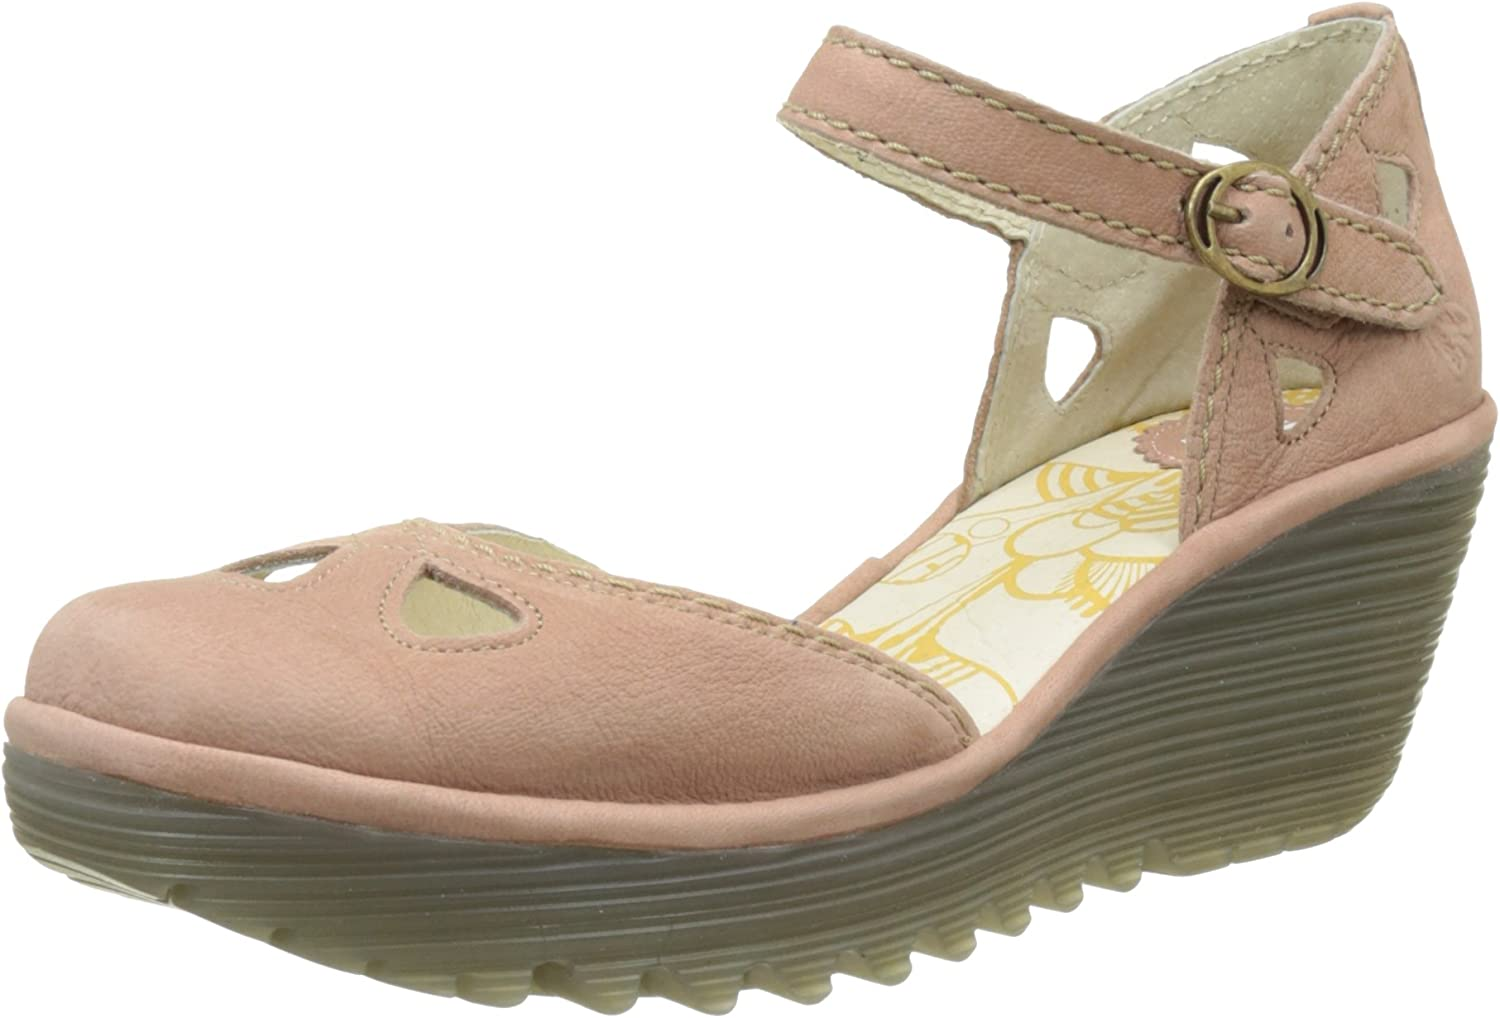 Fly London Womens Yuna Cupido Leather Sandals Summer shoes Wedge Heel